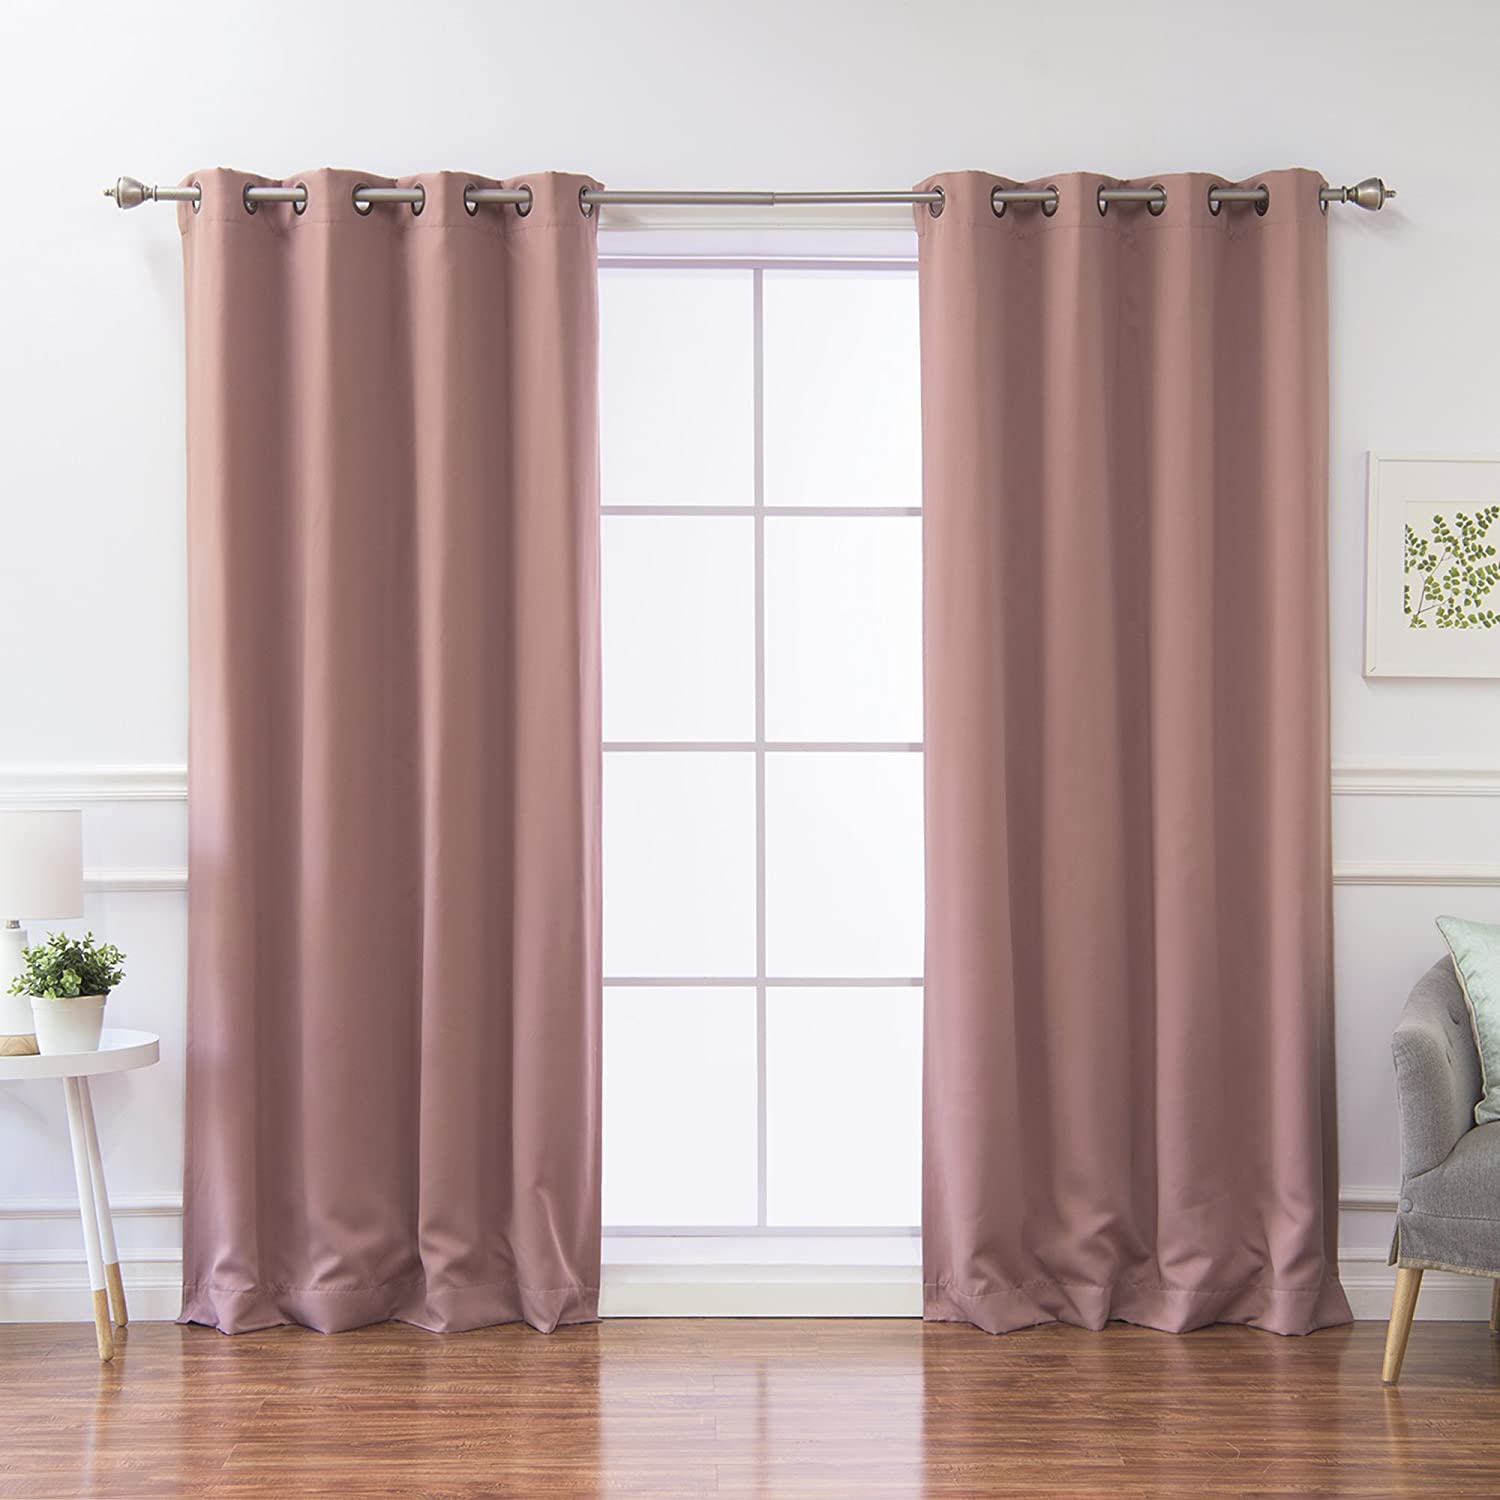 Best Home Fashion Opening large release sale Thermal Insulated Blackout Max 52% OFF Curtains Antique -